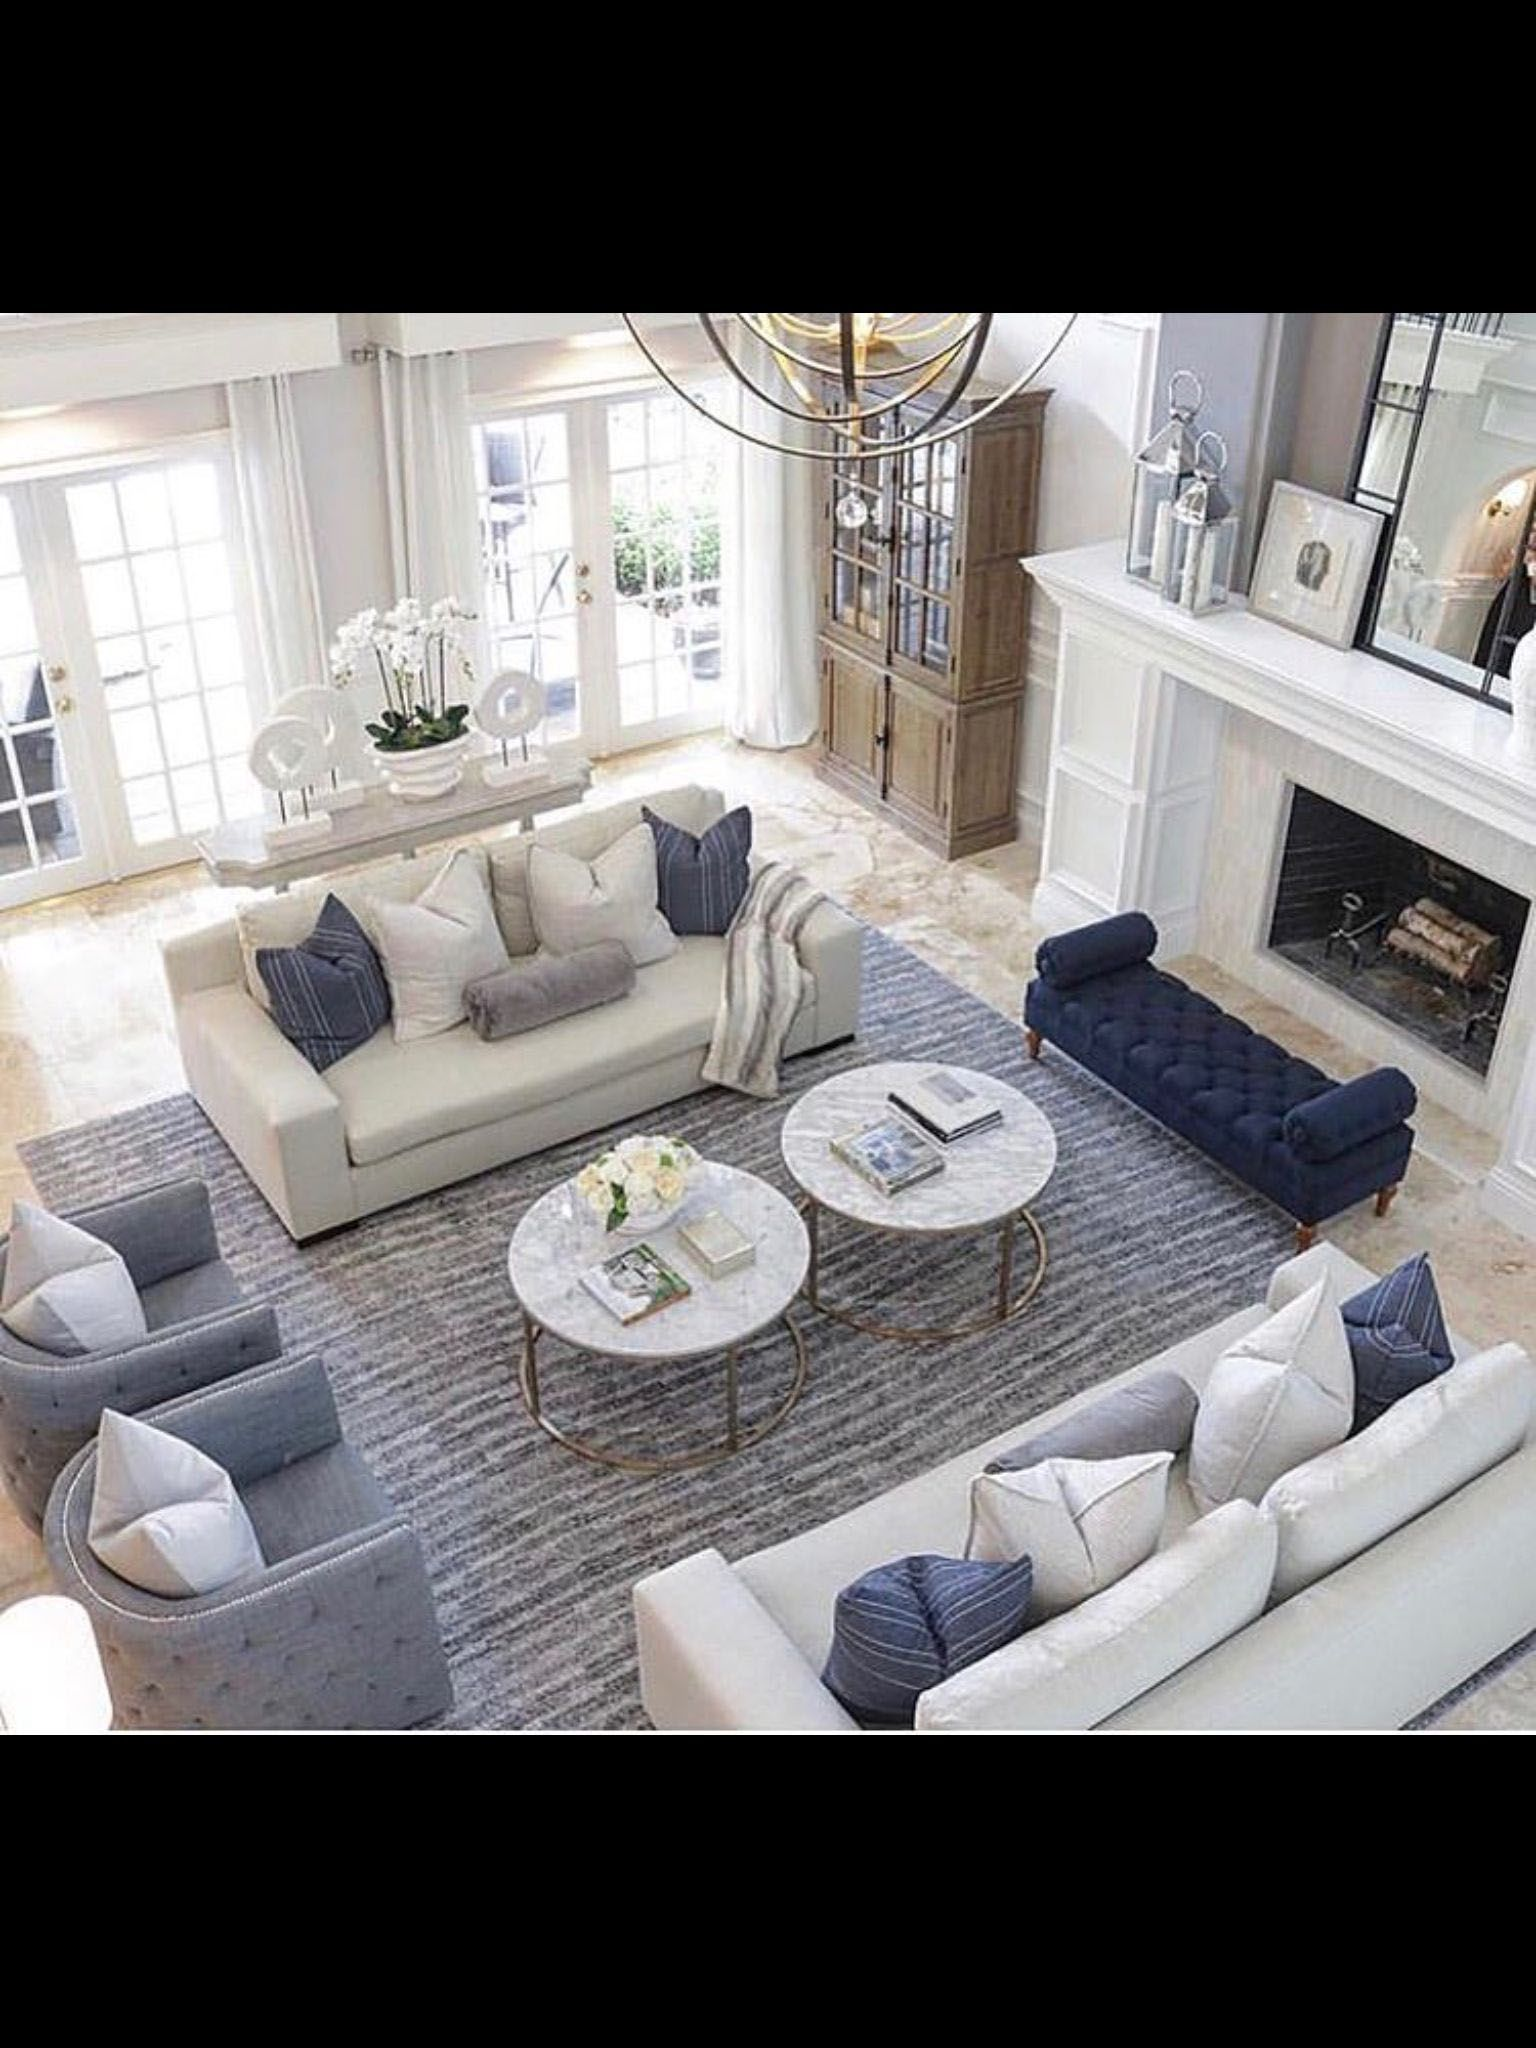 10 home accents Living Room chandeliers ideas